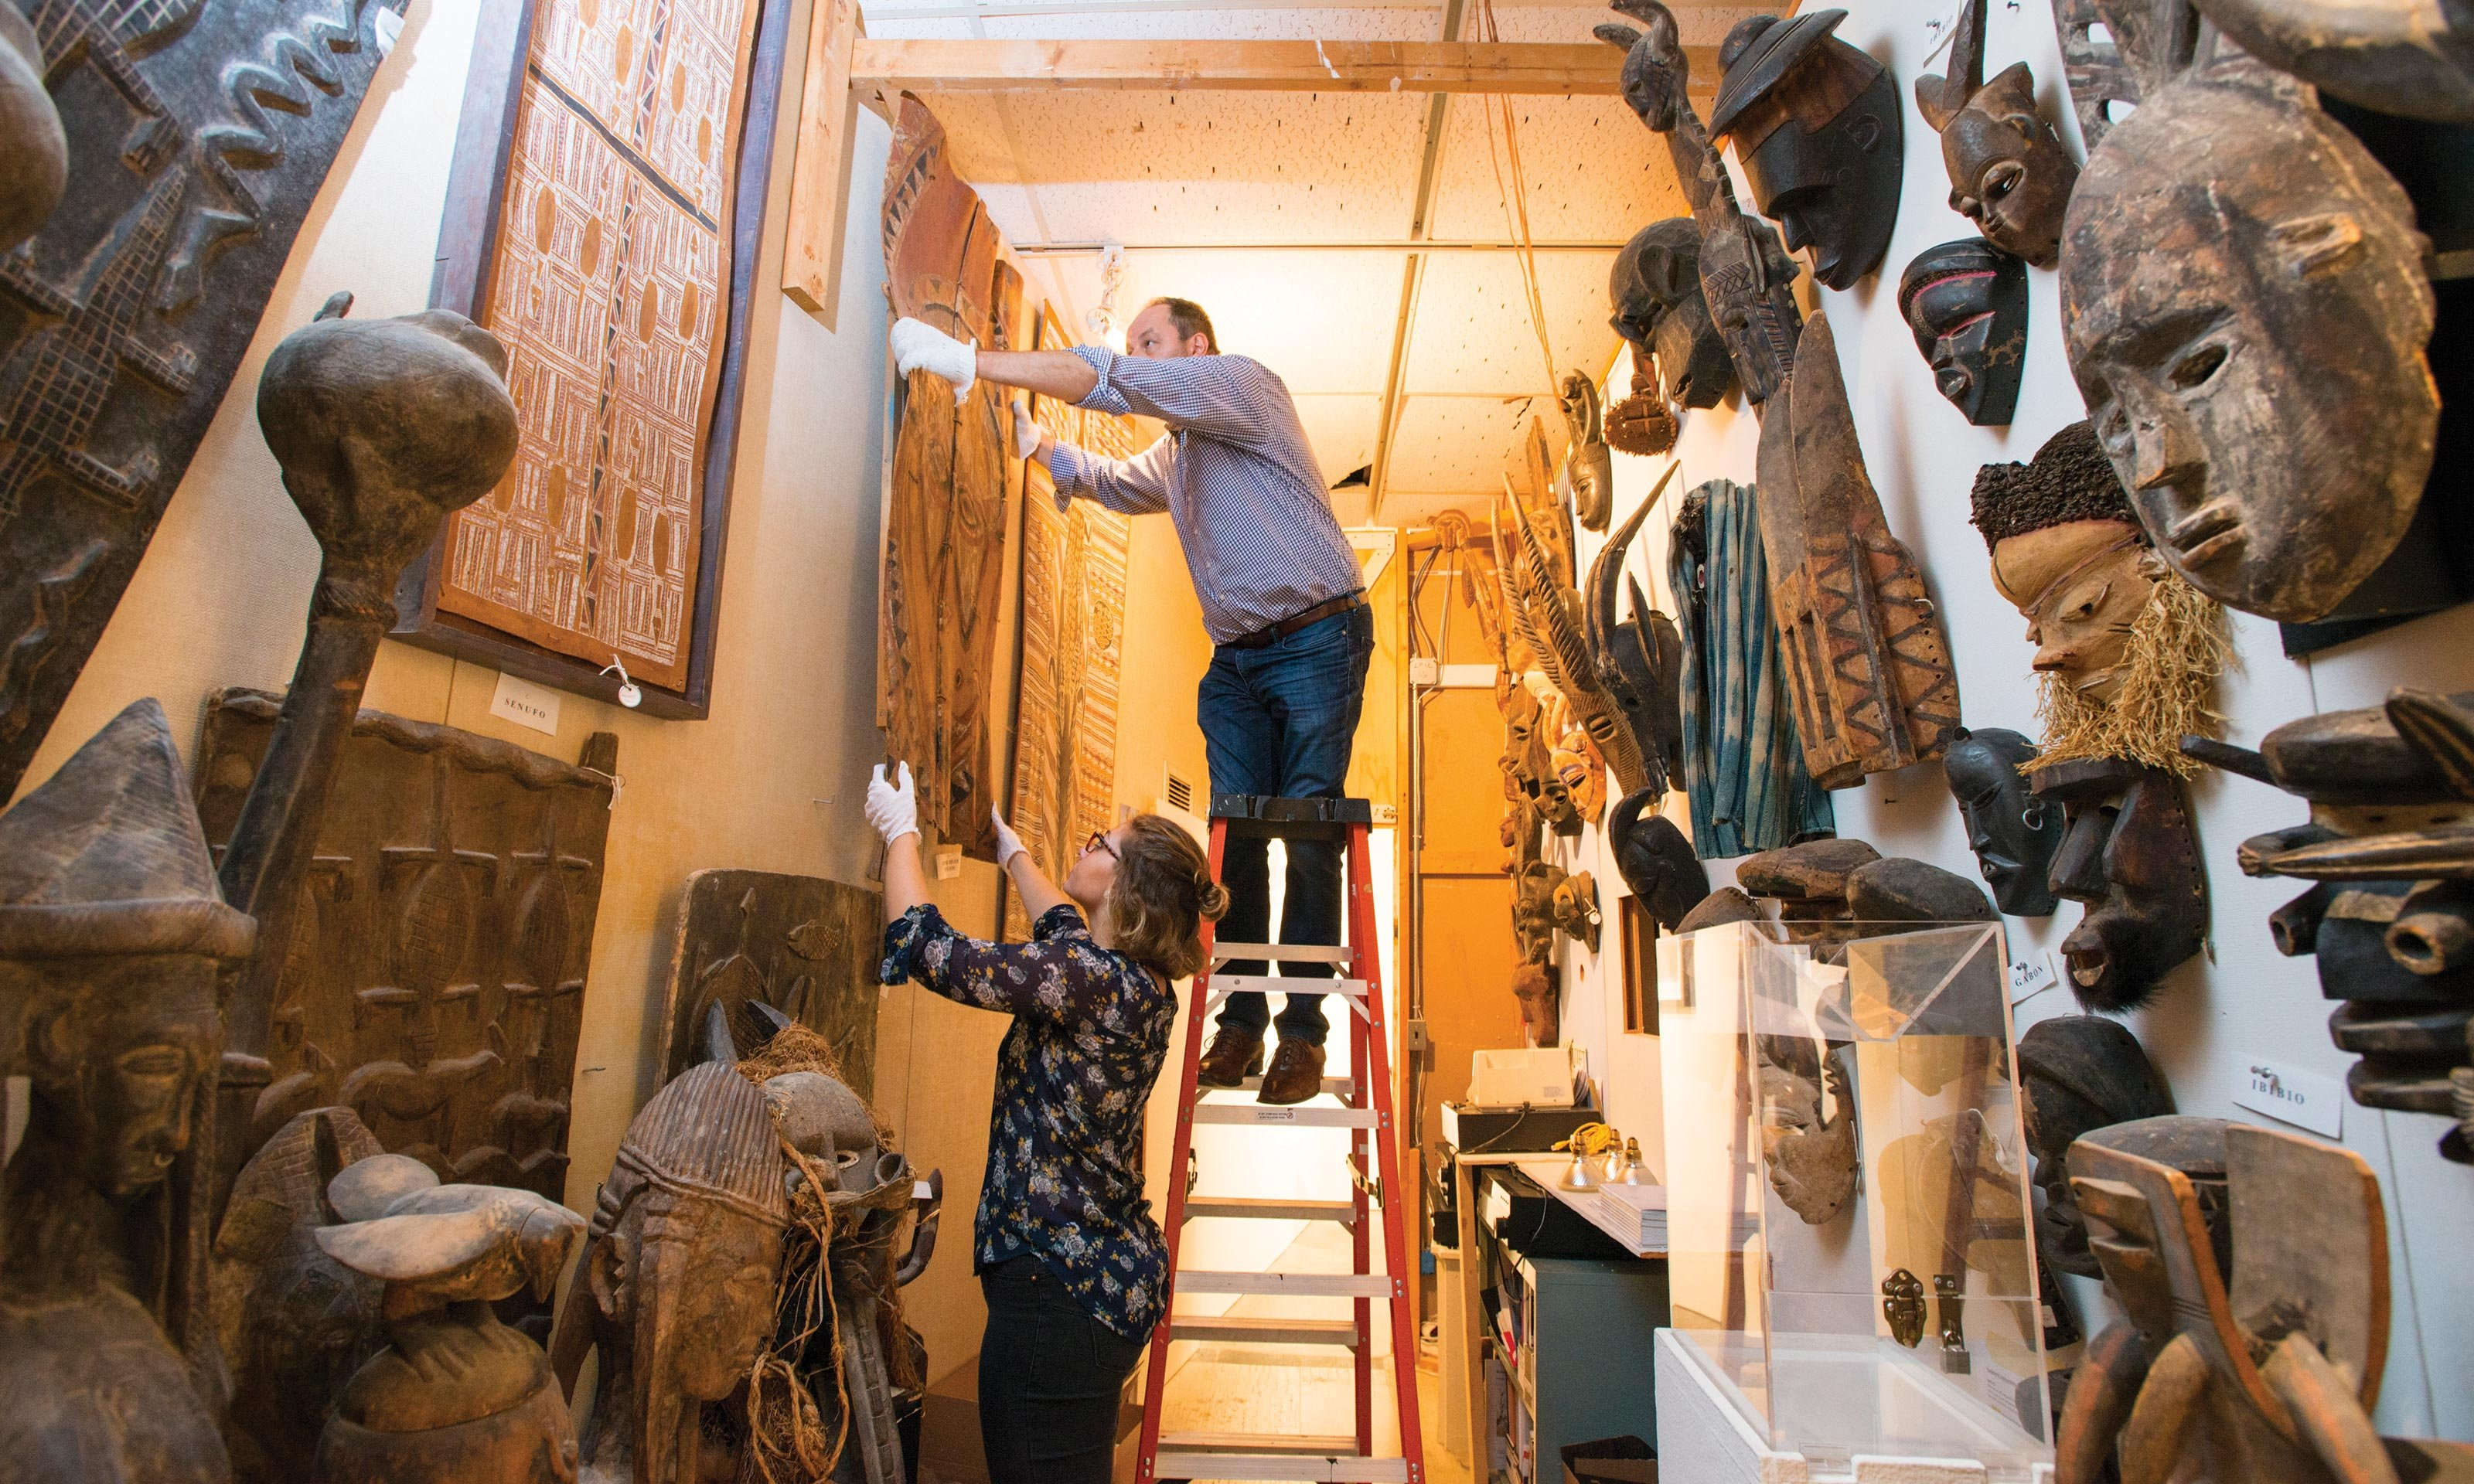 O U Art Gallery director Dick Goody stands on a ladder to hang some African art with the help of a student. African masks decorate the walls.